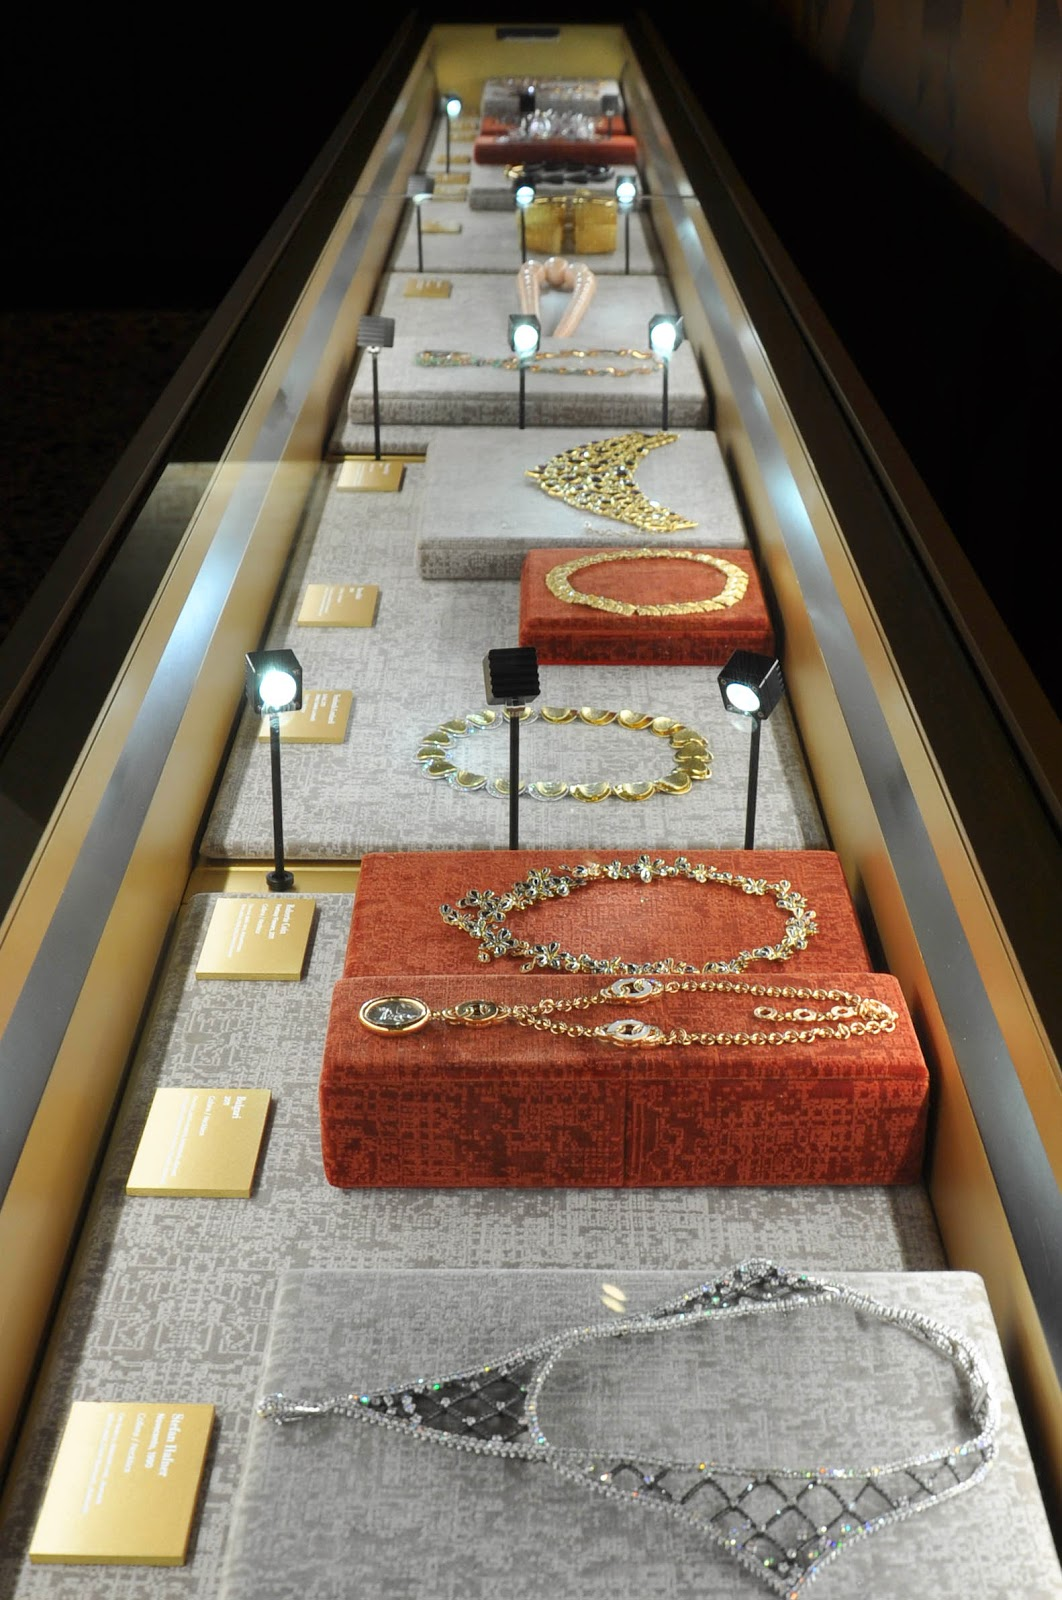 The jewellery case in the Beauty room in the Museum of the Jewellery in Vicenza